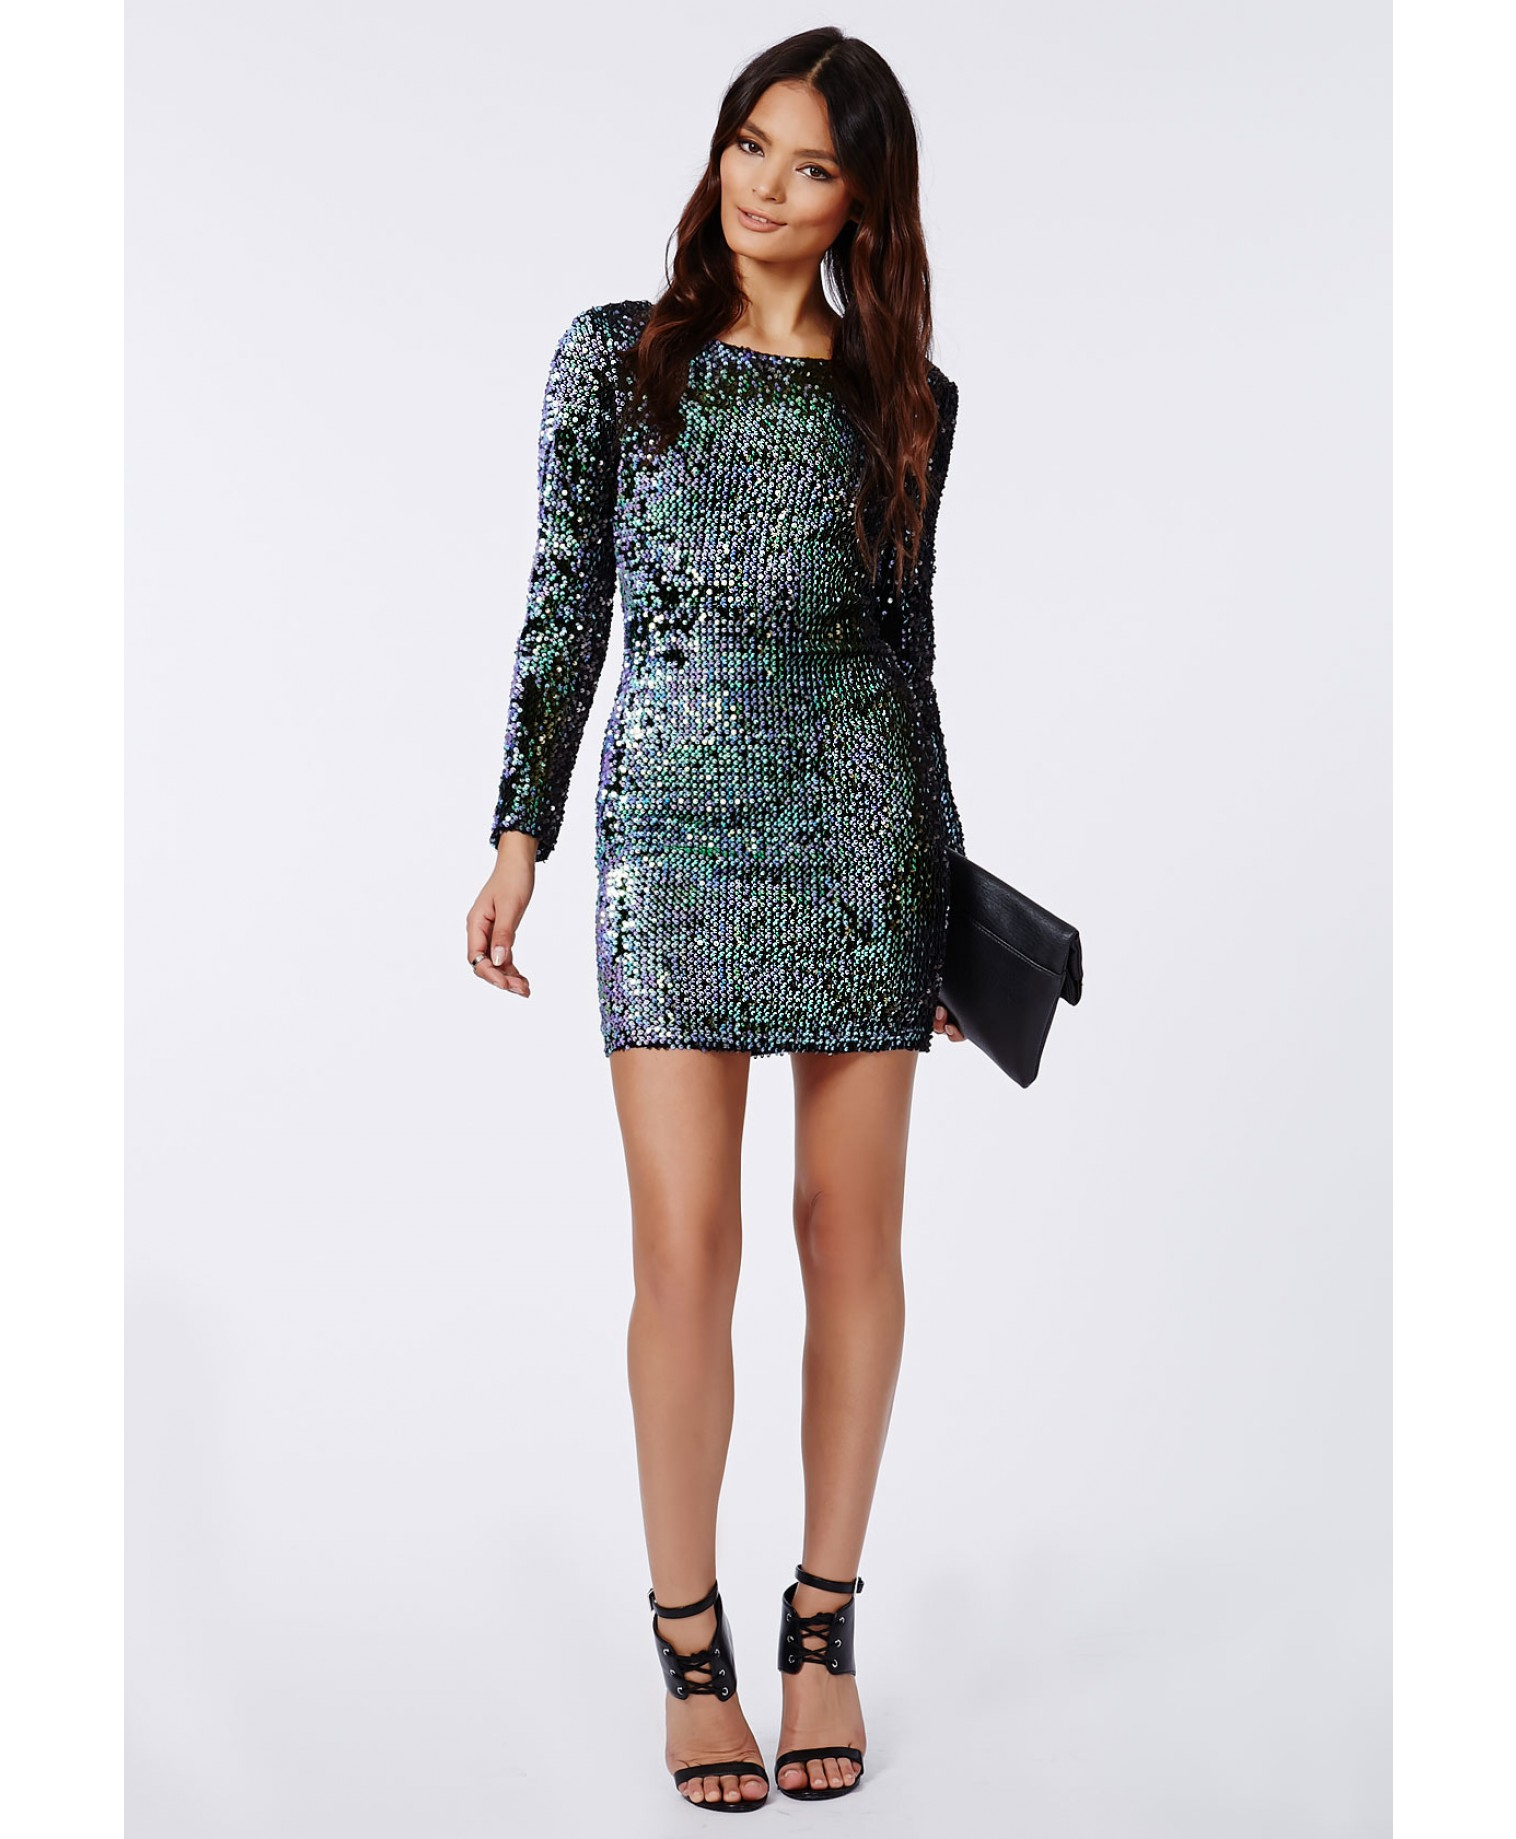 d620f227 Lyst - Missguided Ivy Mermaid Sequin Long Sleeve Mini Dress Green in ...